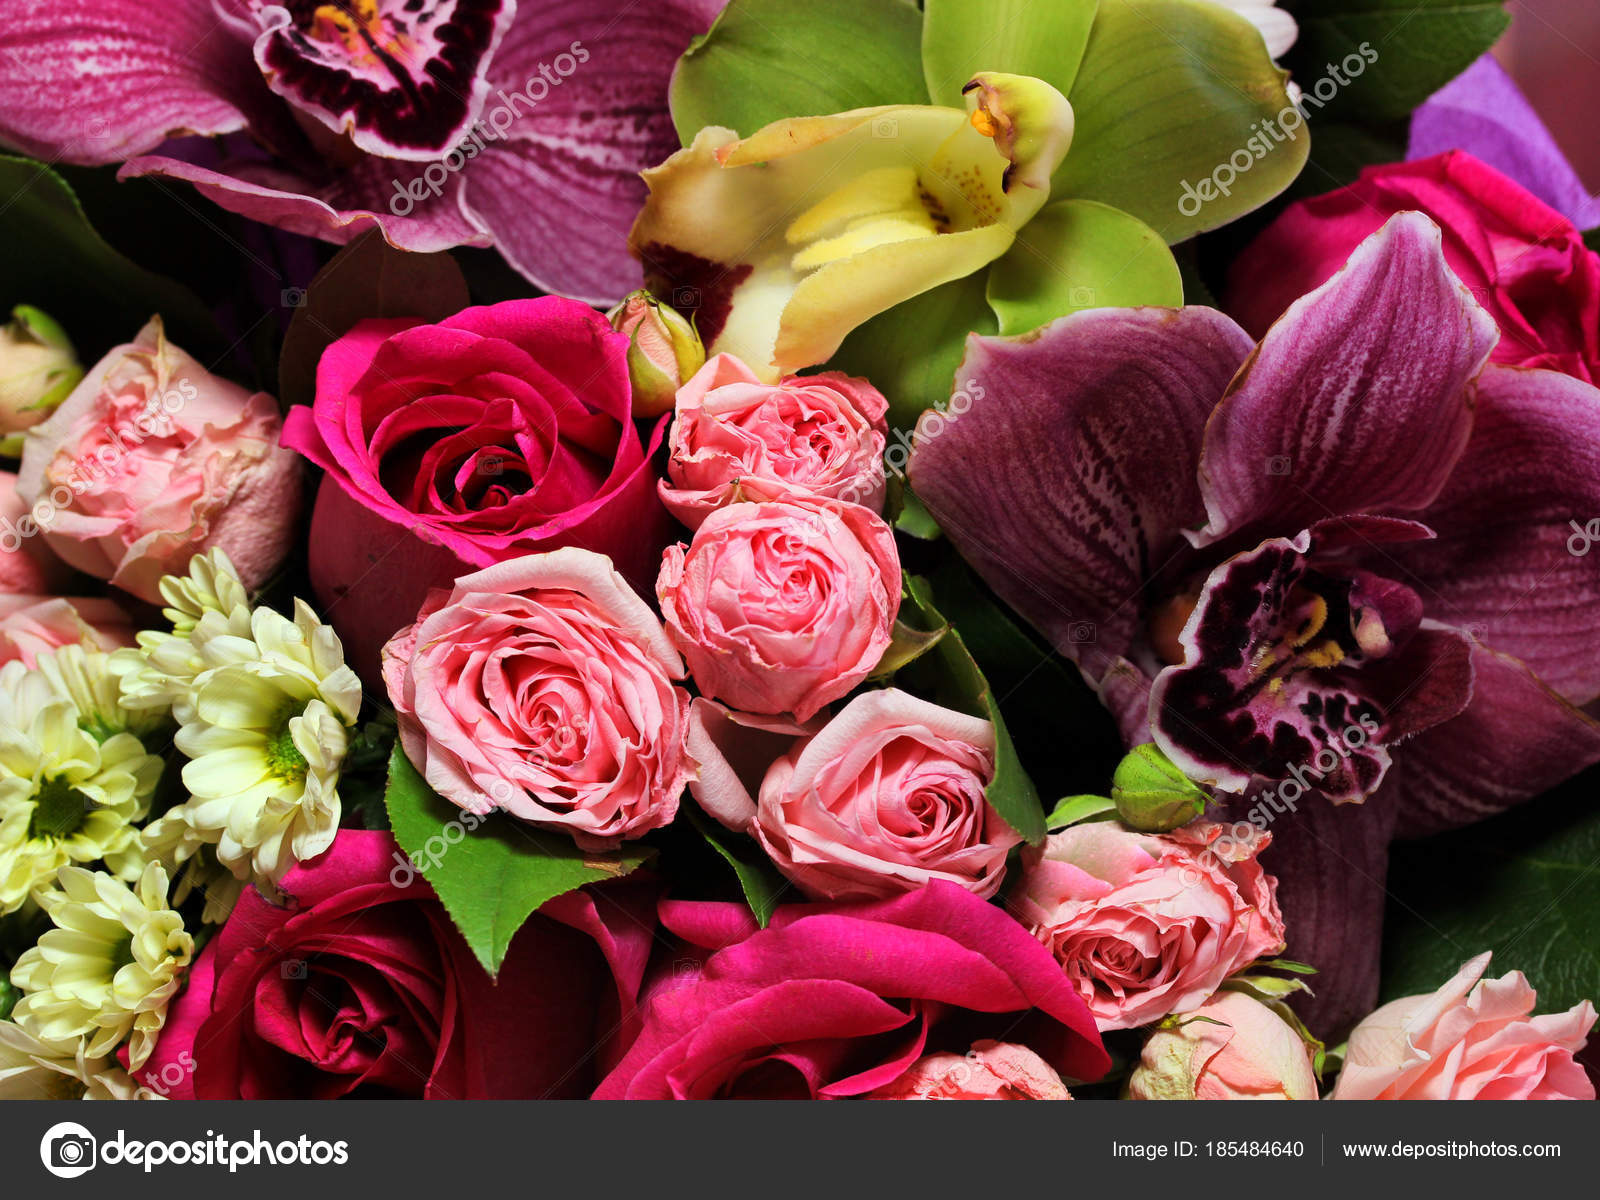 Beautiful spring bouquet of flowers close up on a pink background beautiful spring bouquet of flowers close up on a pink background bouquet of roses chrysanthemums lilies photo by oly214yandex izmirmasajfo